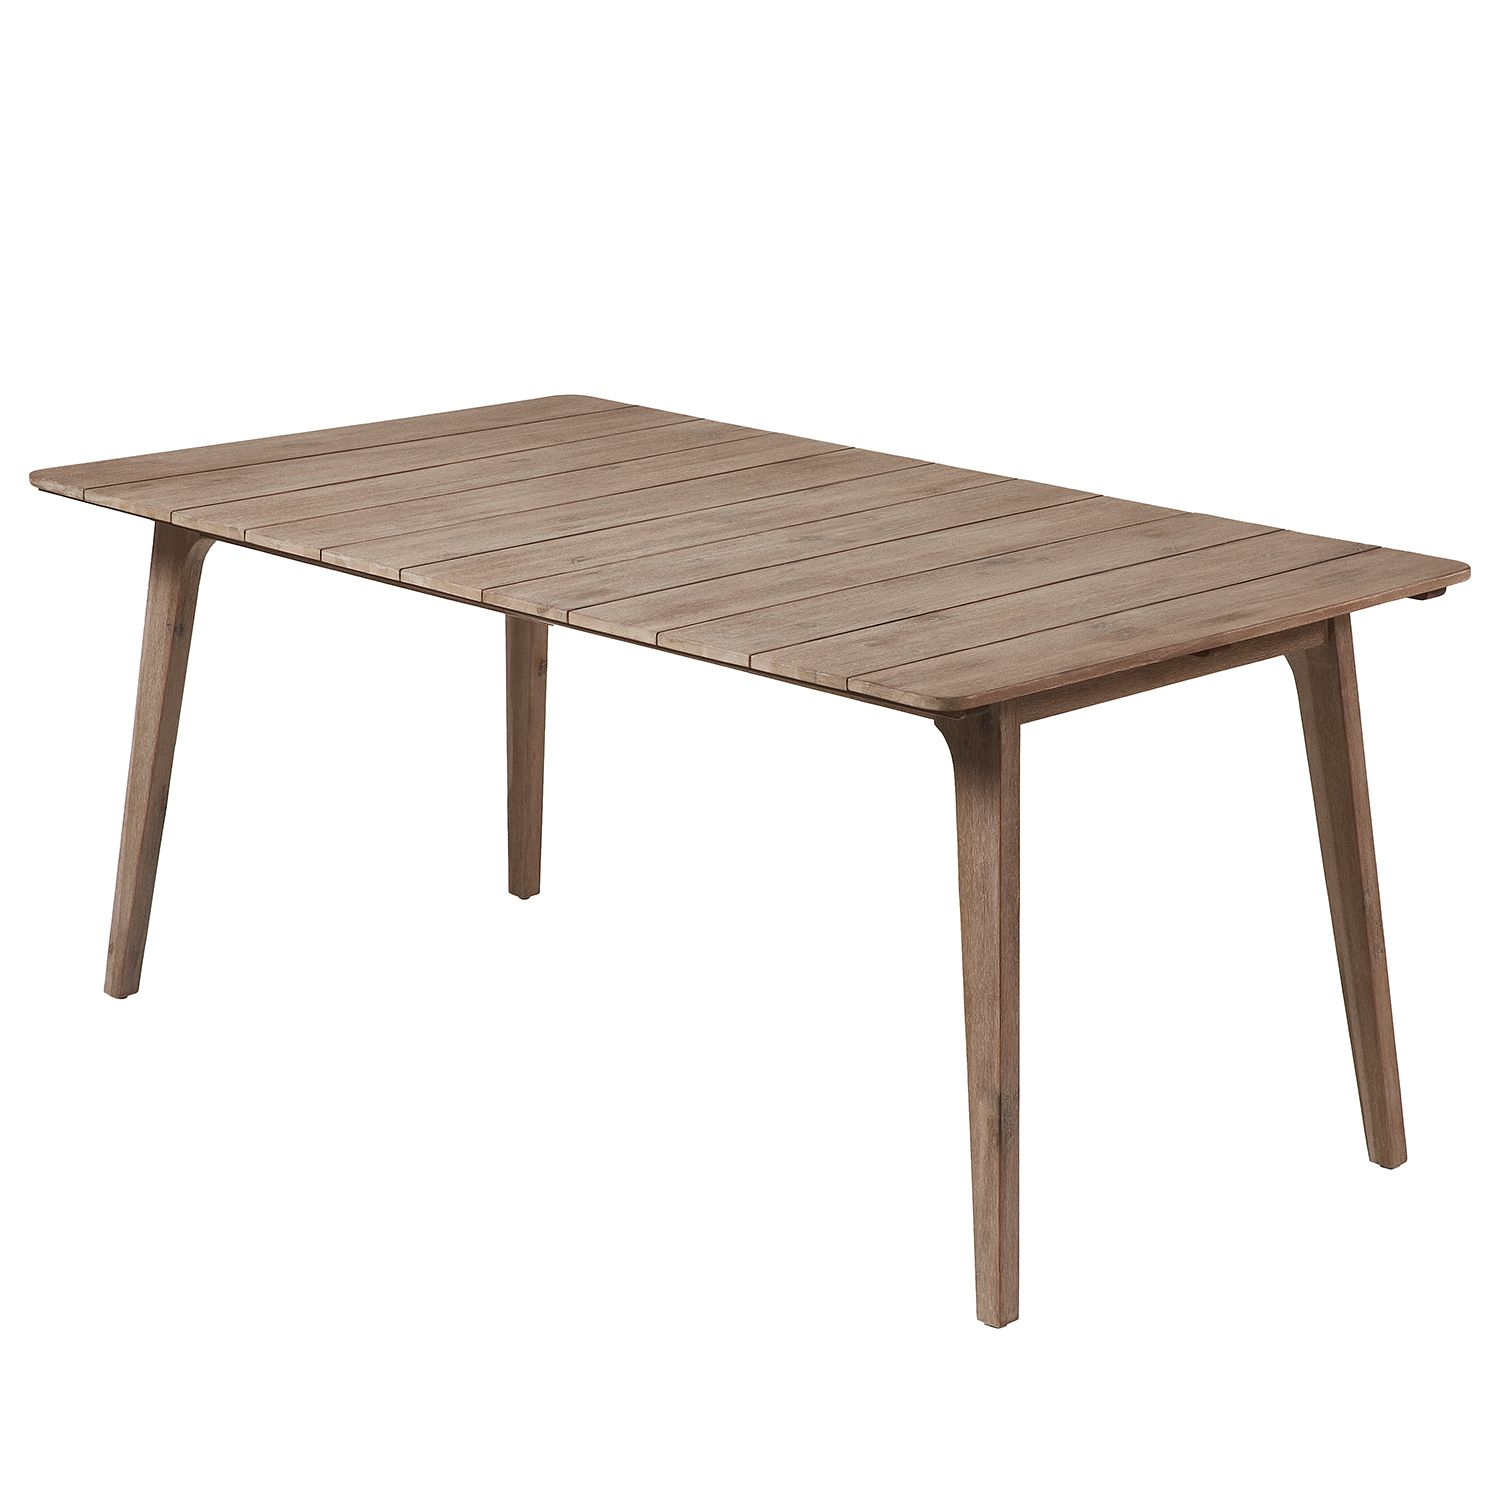 Table à manger Rozzano - Acacia massif - Acacia marron - 175 x 90 cm, Morteens